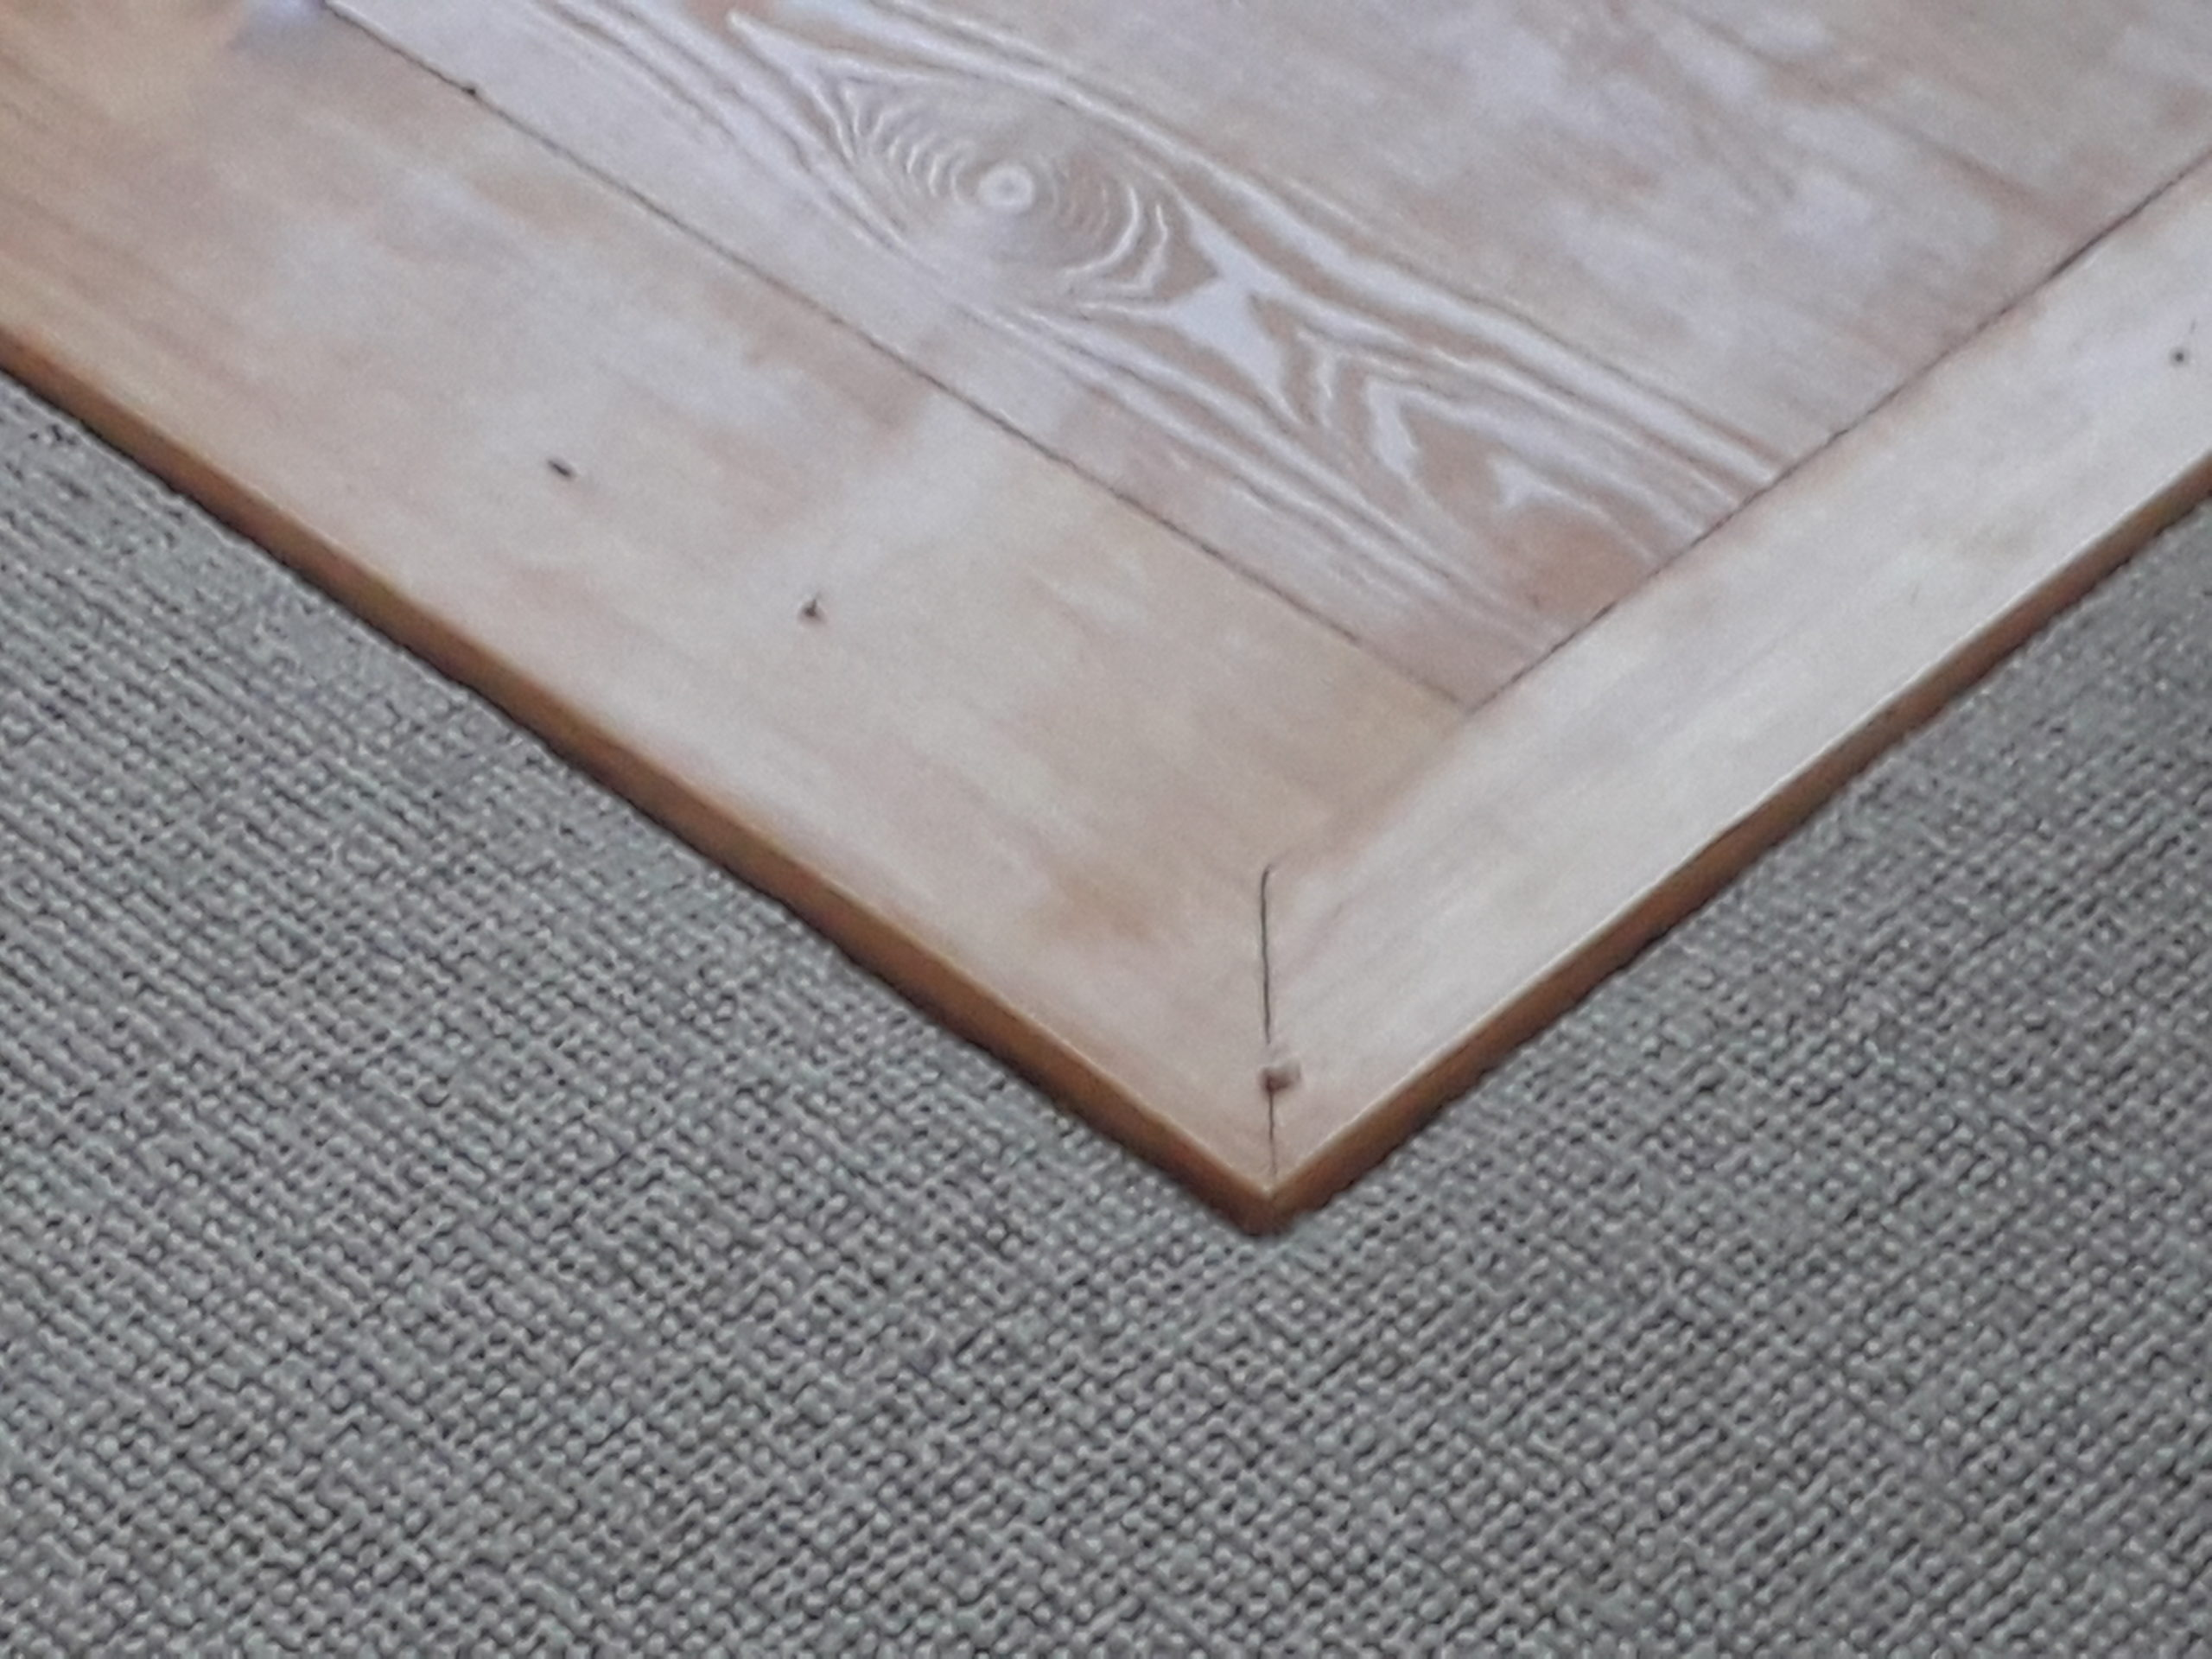 With care fitting around wooden features makes a really classy finish.